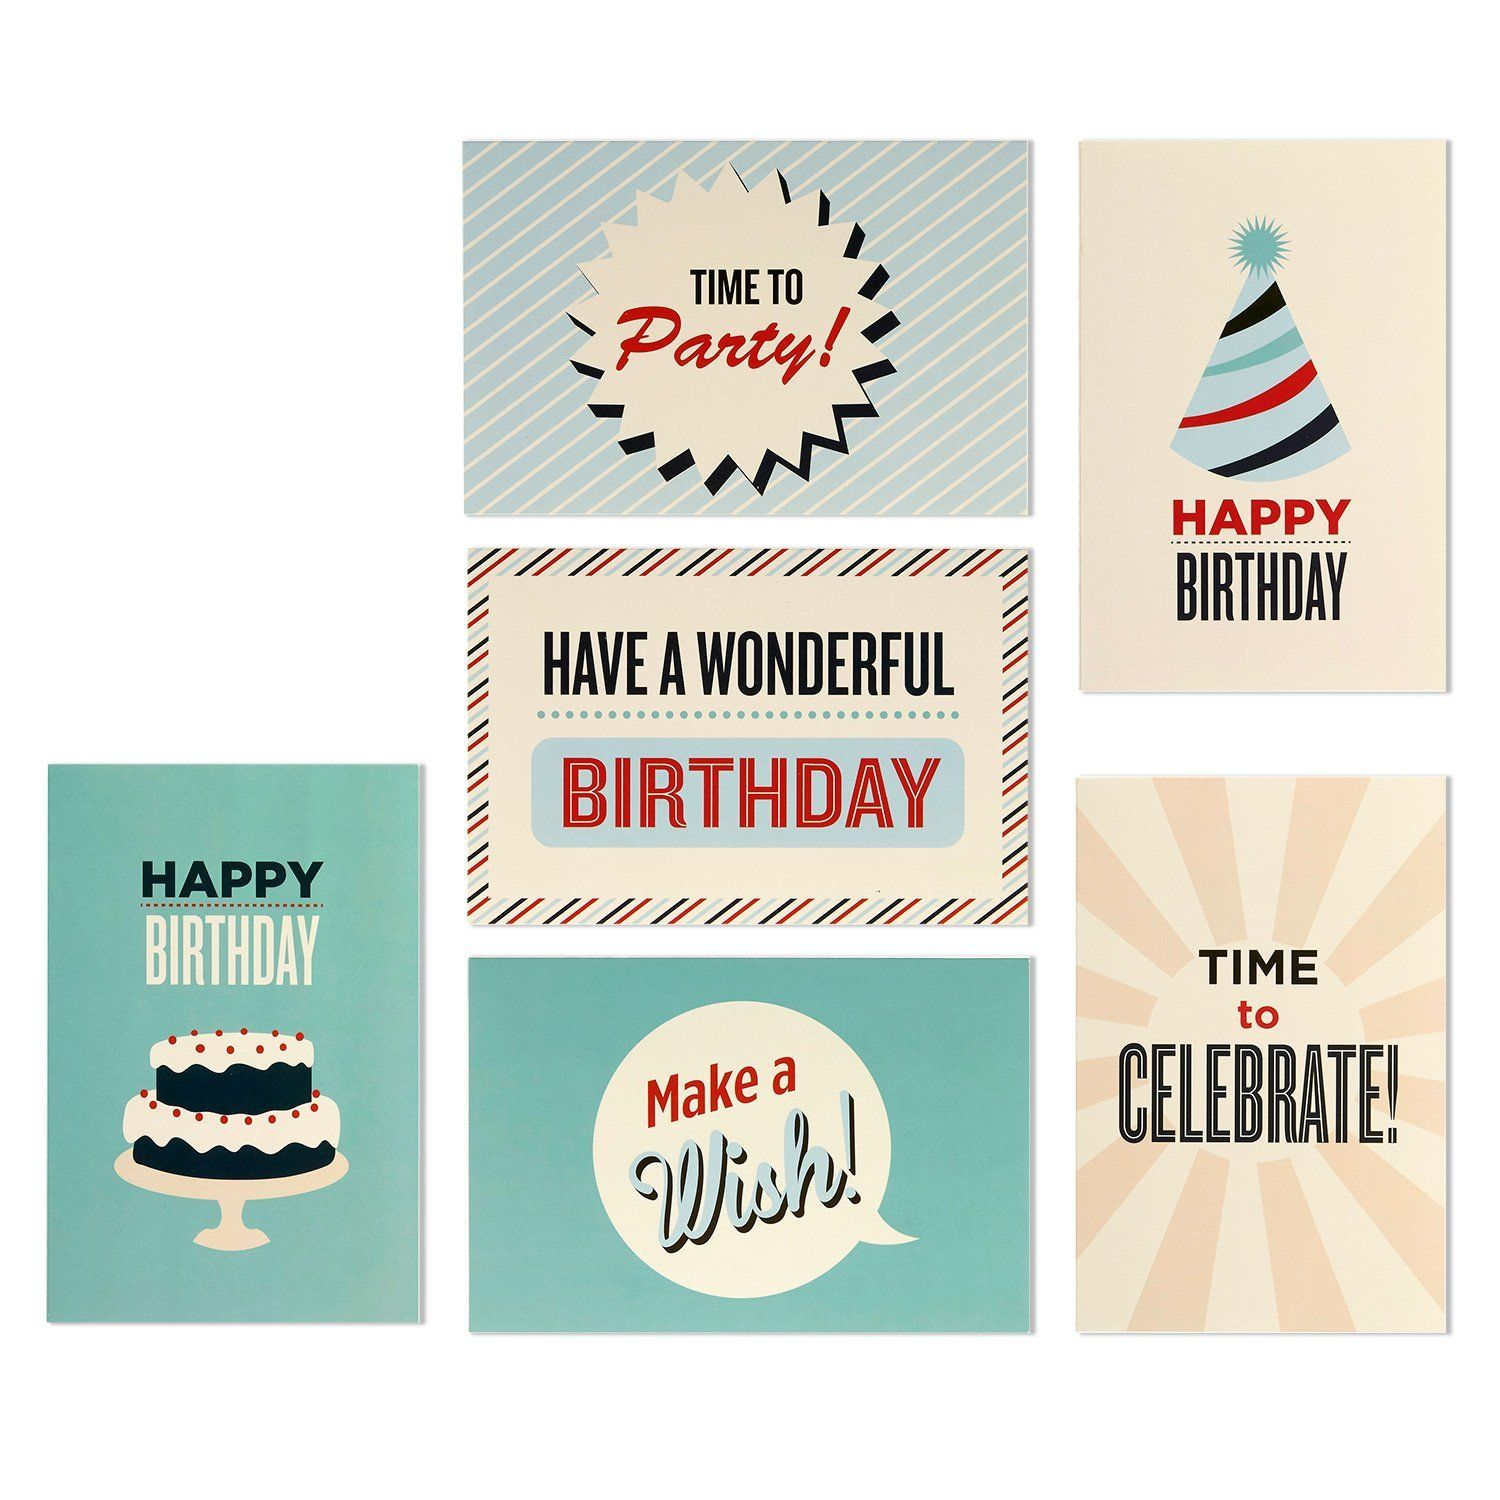 Amazon 48 Pack Happy Birthday Greeting Cards 6 Vintage Retro Cake Party Hat Designs Bulk Box Set Variety Assortment Envelopes Included 4 X